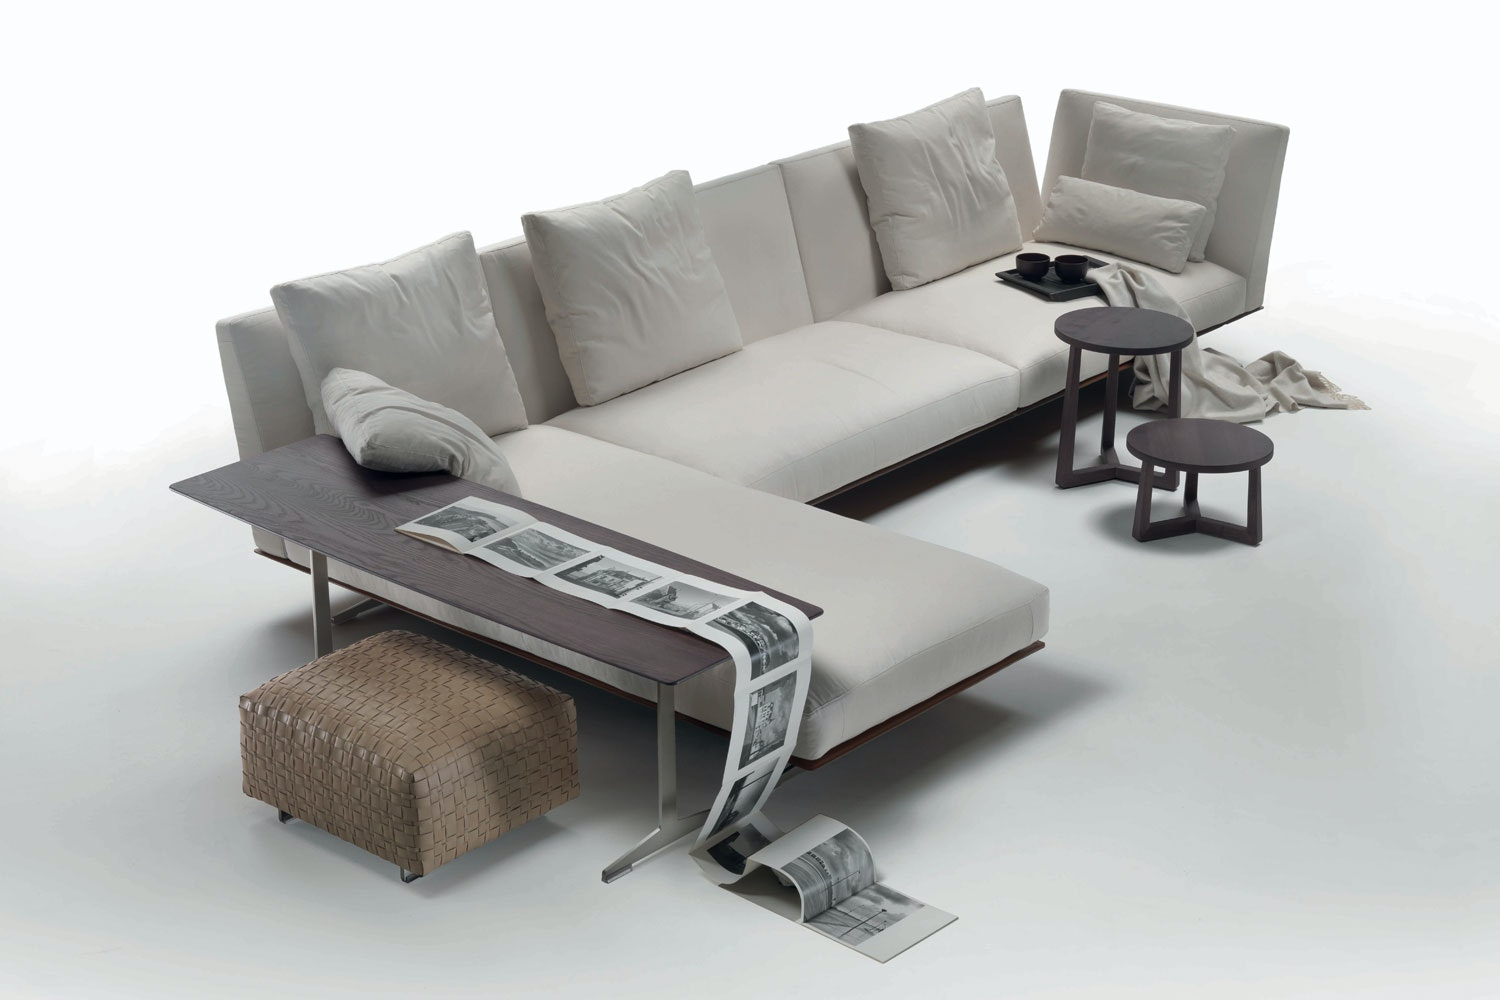 Evergreen sofa